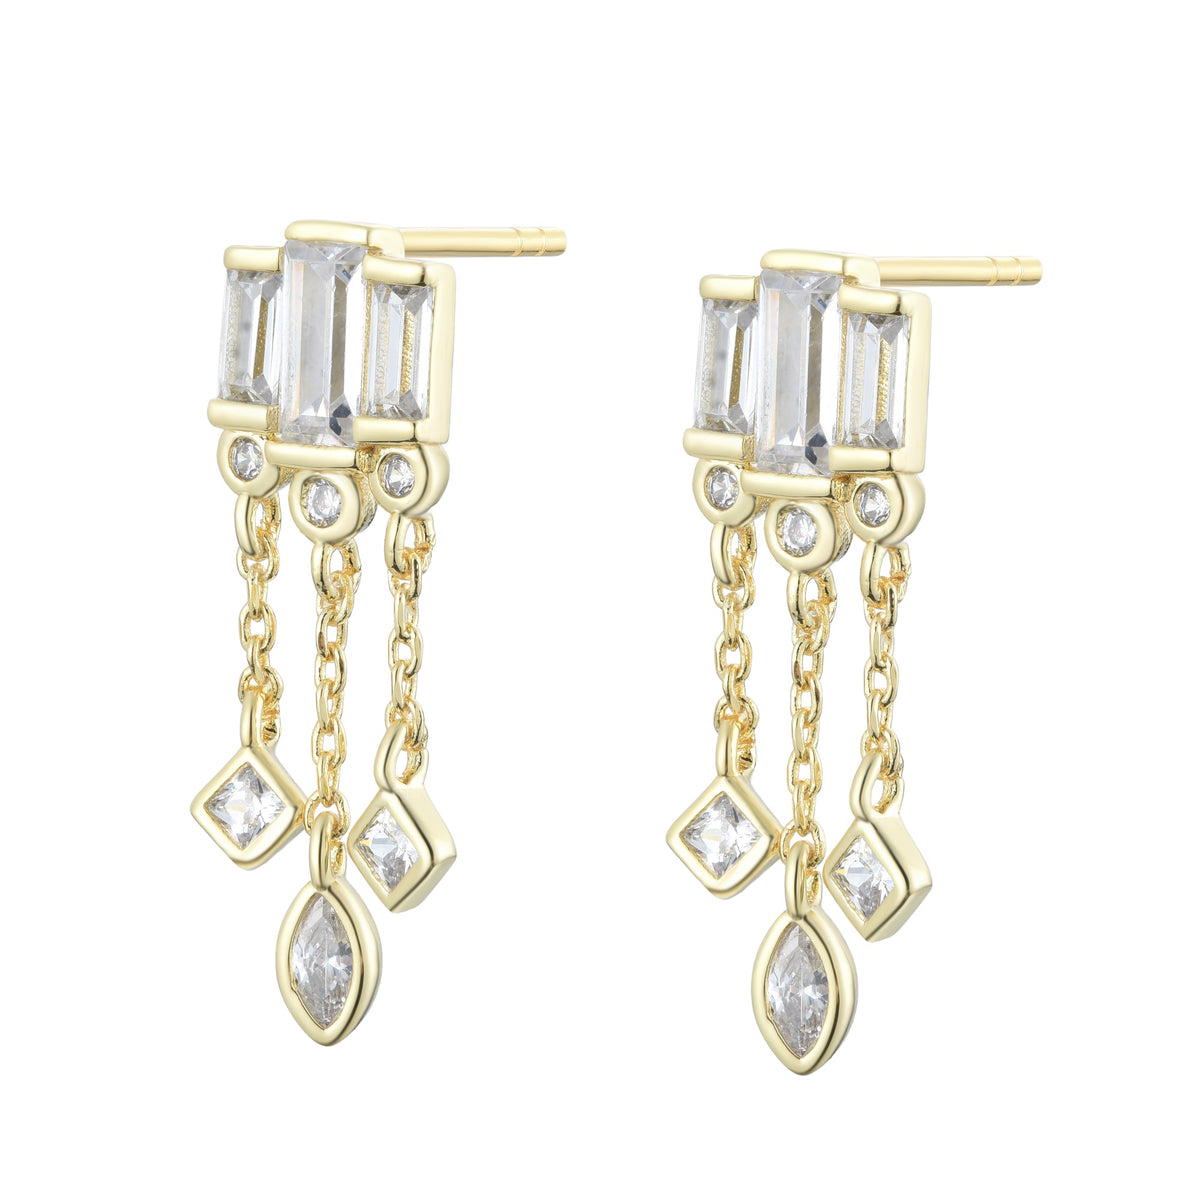 Ferentina | Marron glacé Earrings | 925 Silver | White CZ | 18K Gold Plated